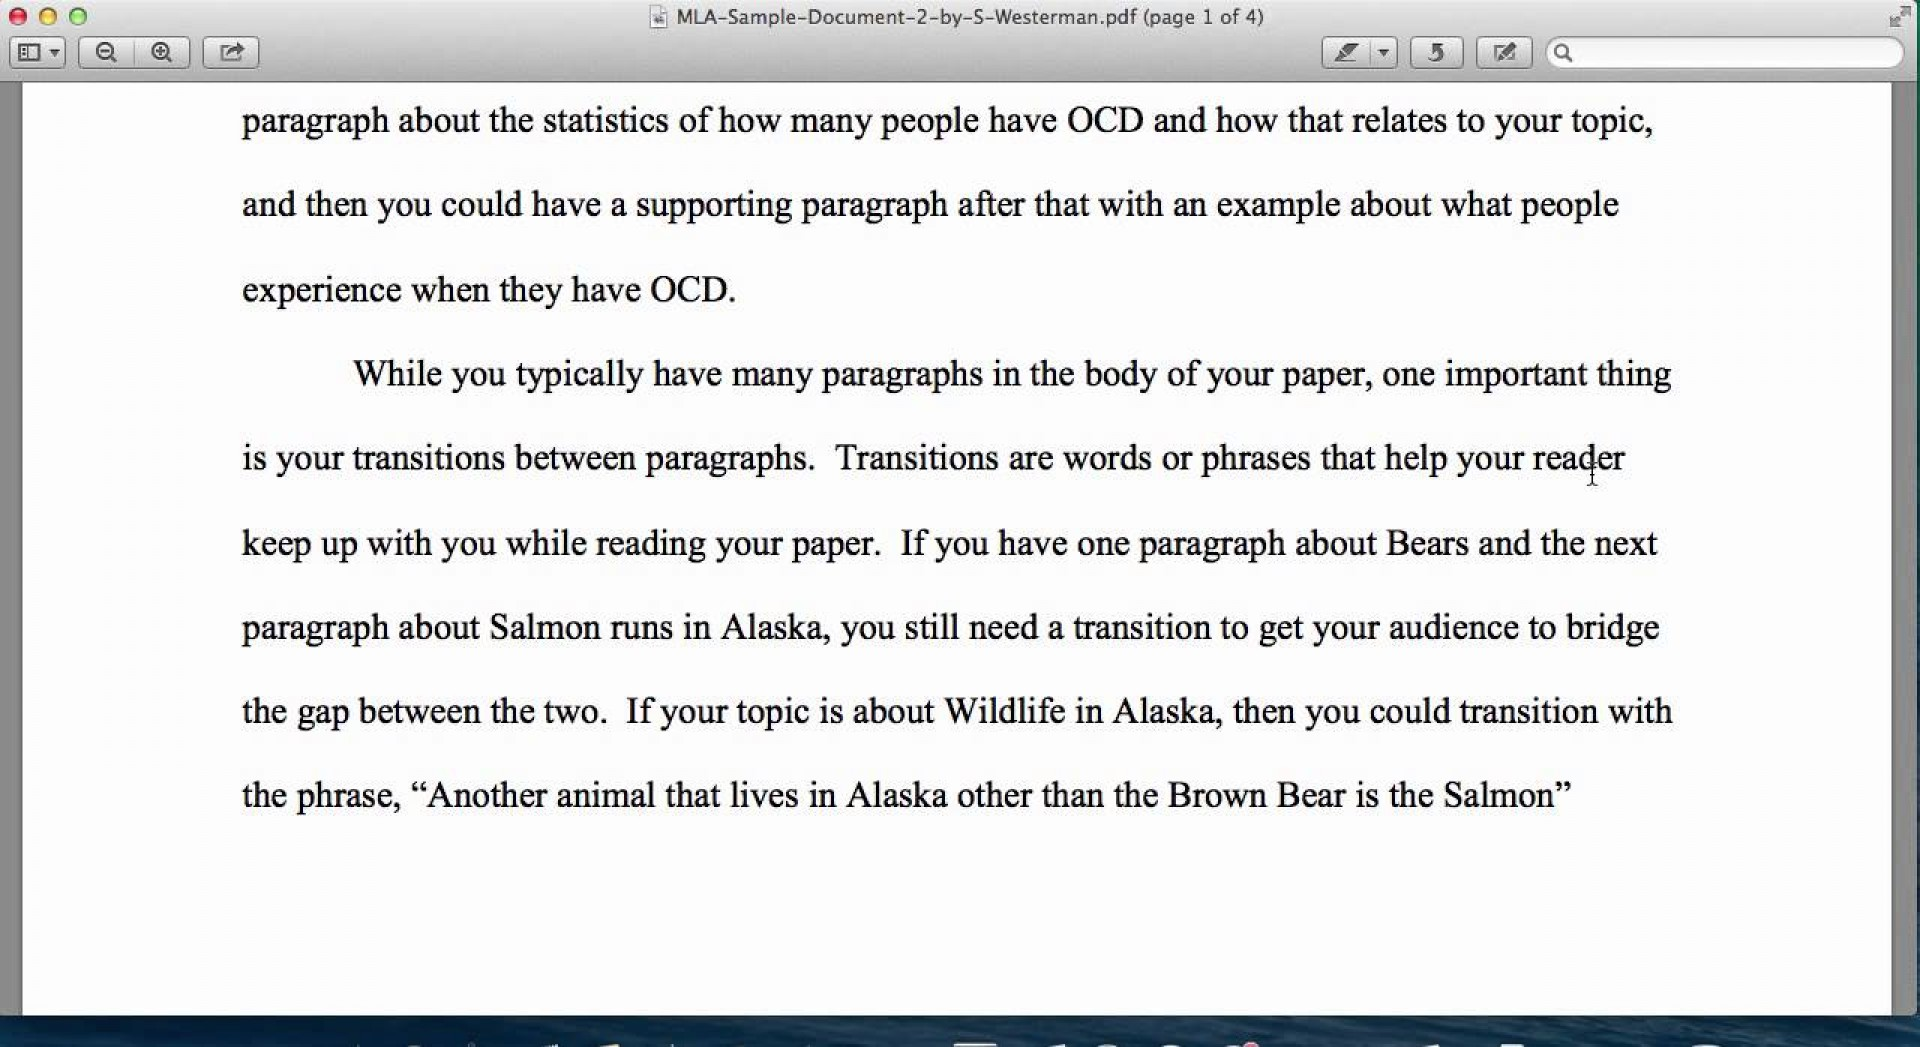 018 Maxresdefault Essay Example How Many Paragraphsre In Formidable Paragraphs Are A Argumentative Body Should Narrative Have Persuasive 1920